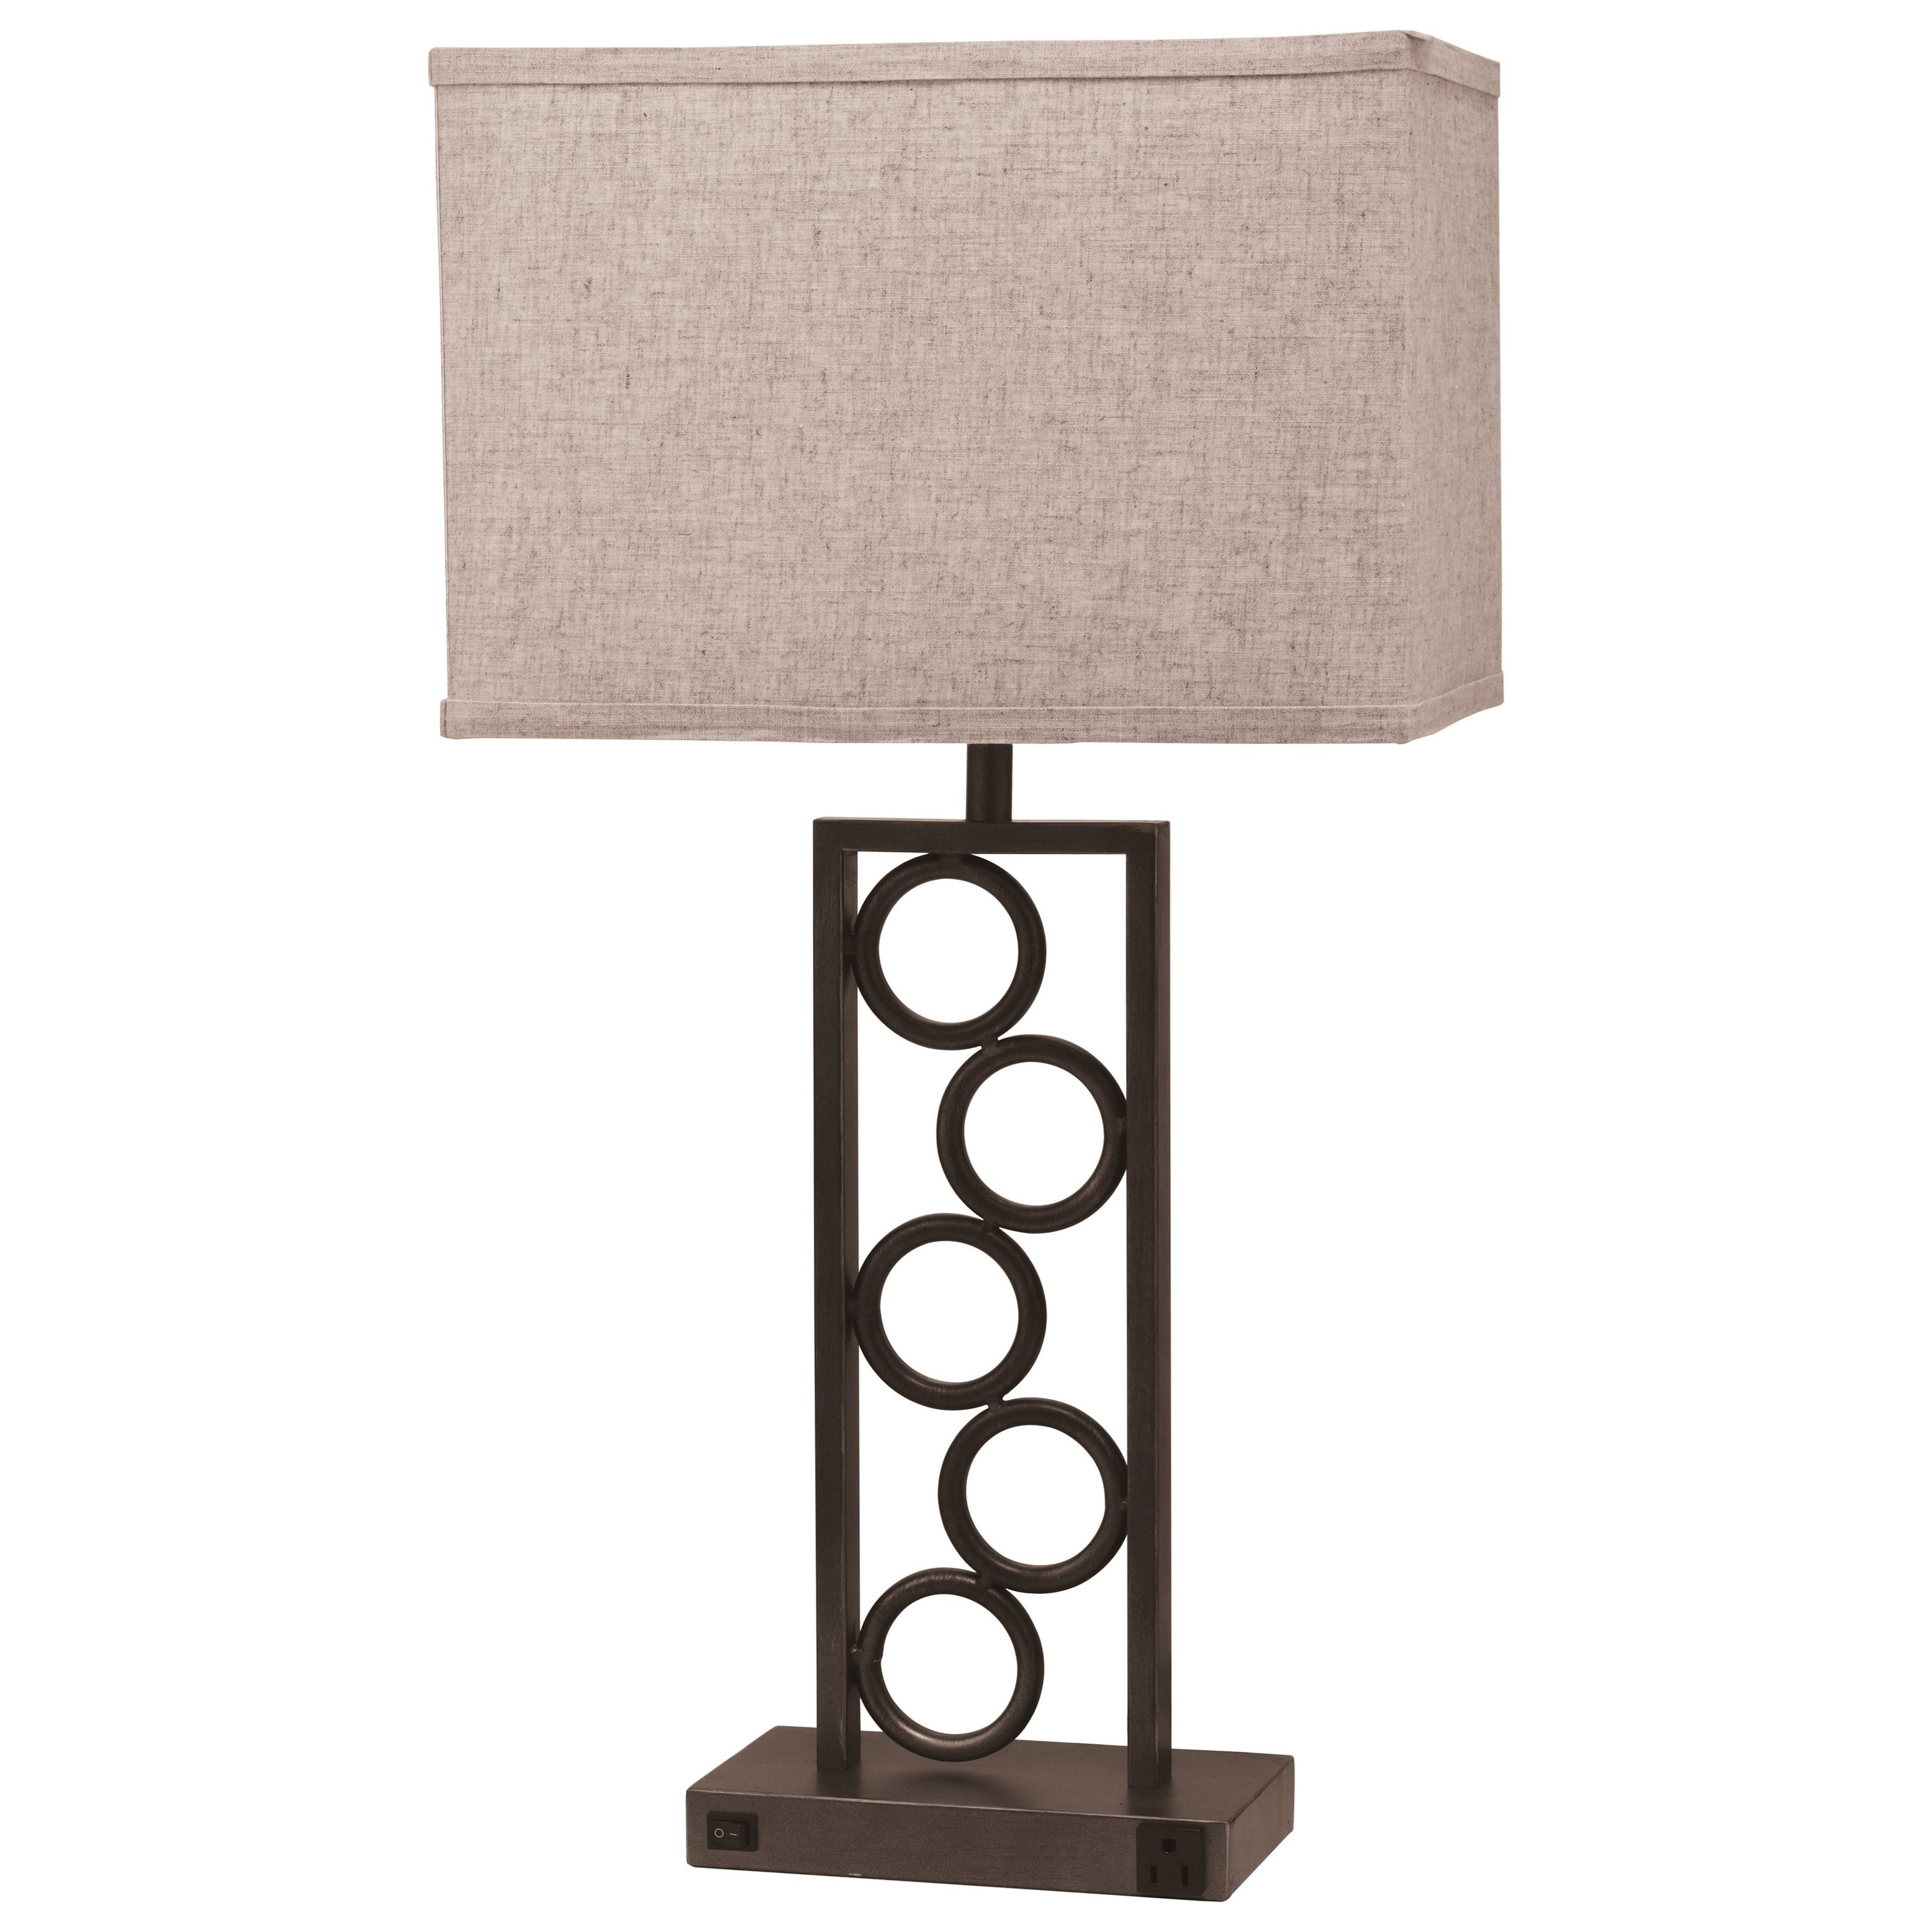 6234 Table Lamp by Crown Mark at Catalog Outlet